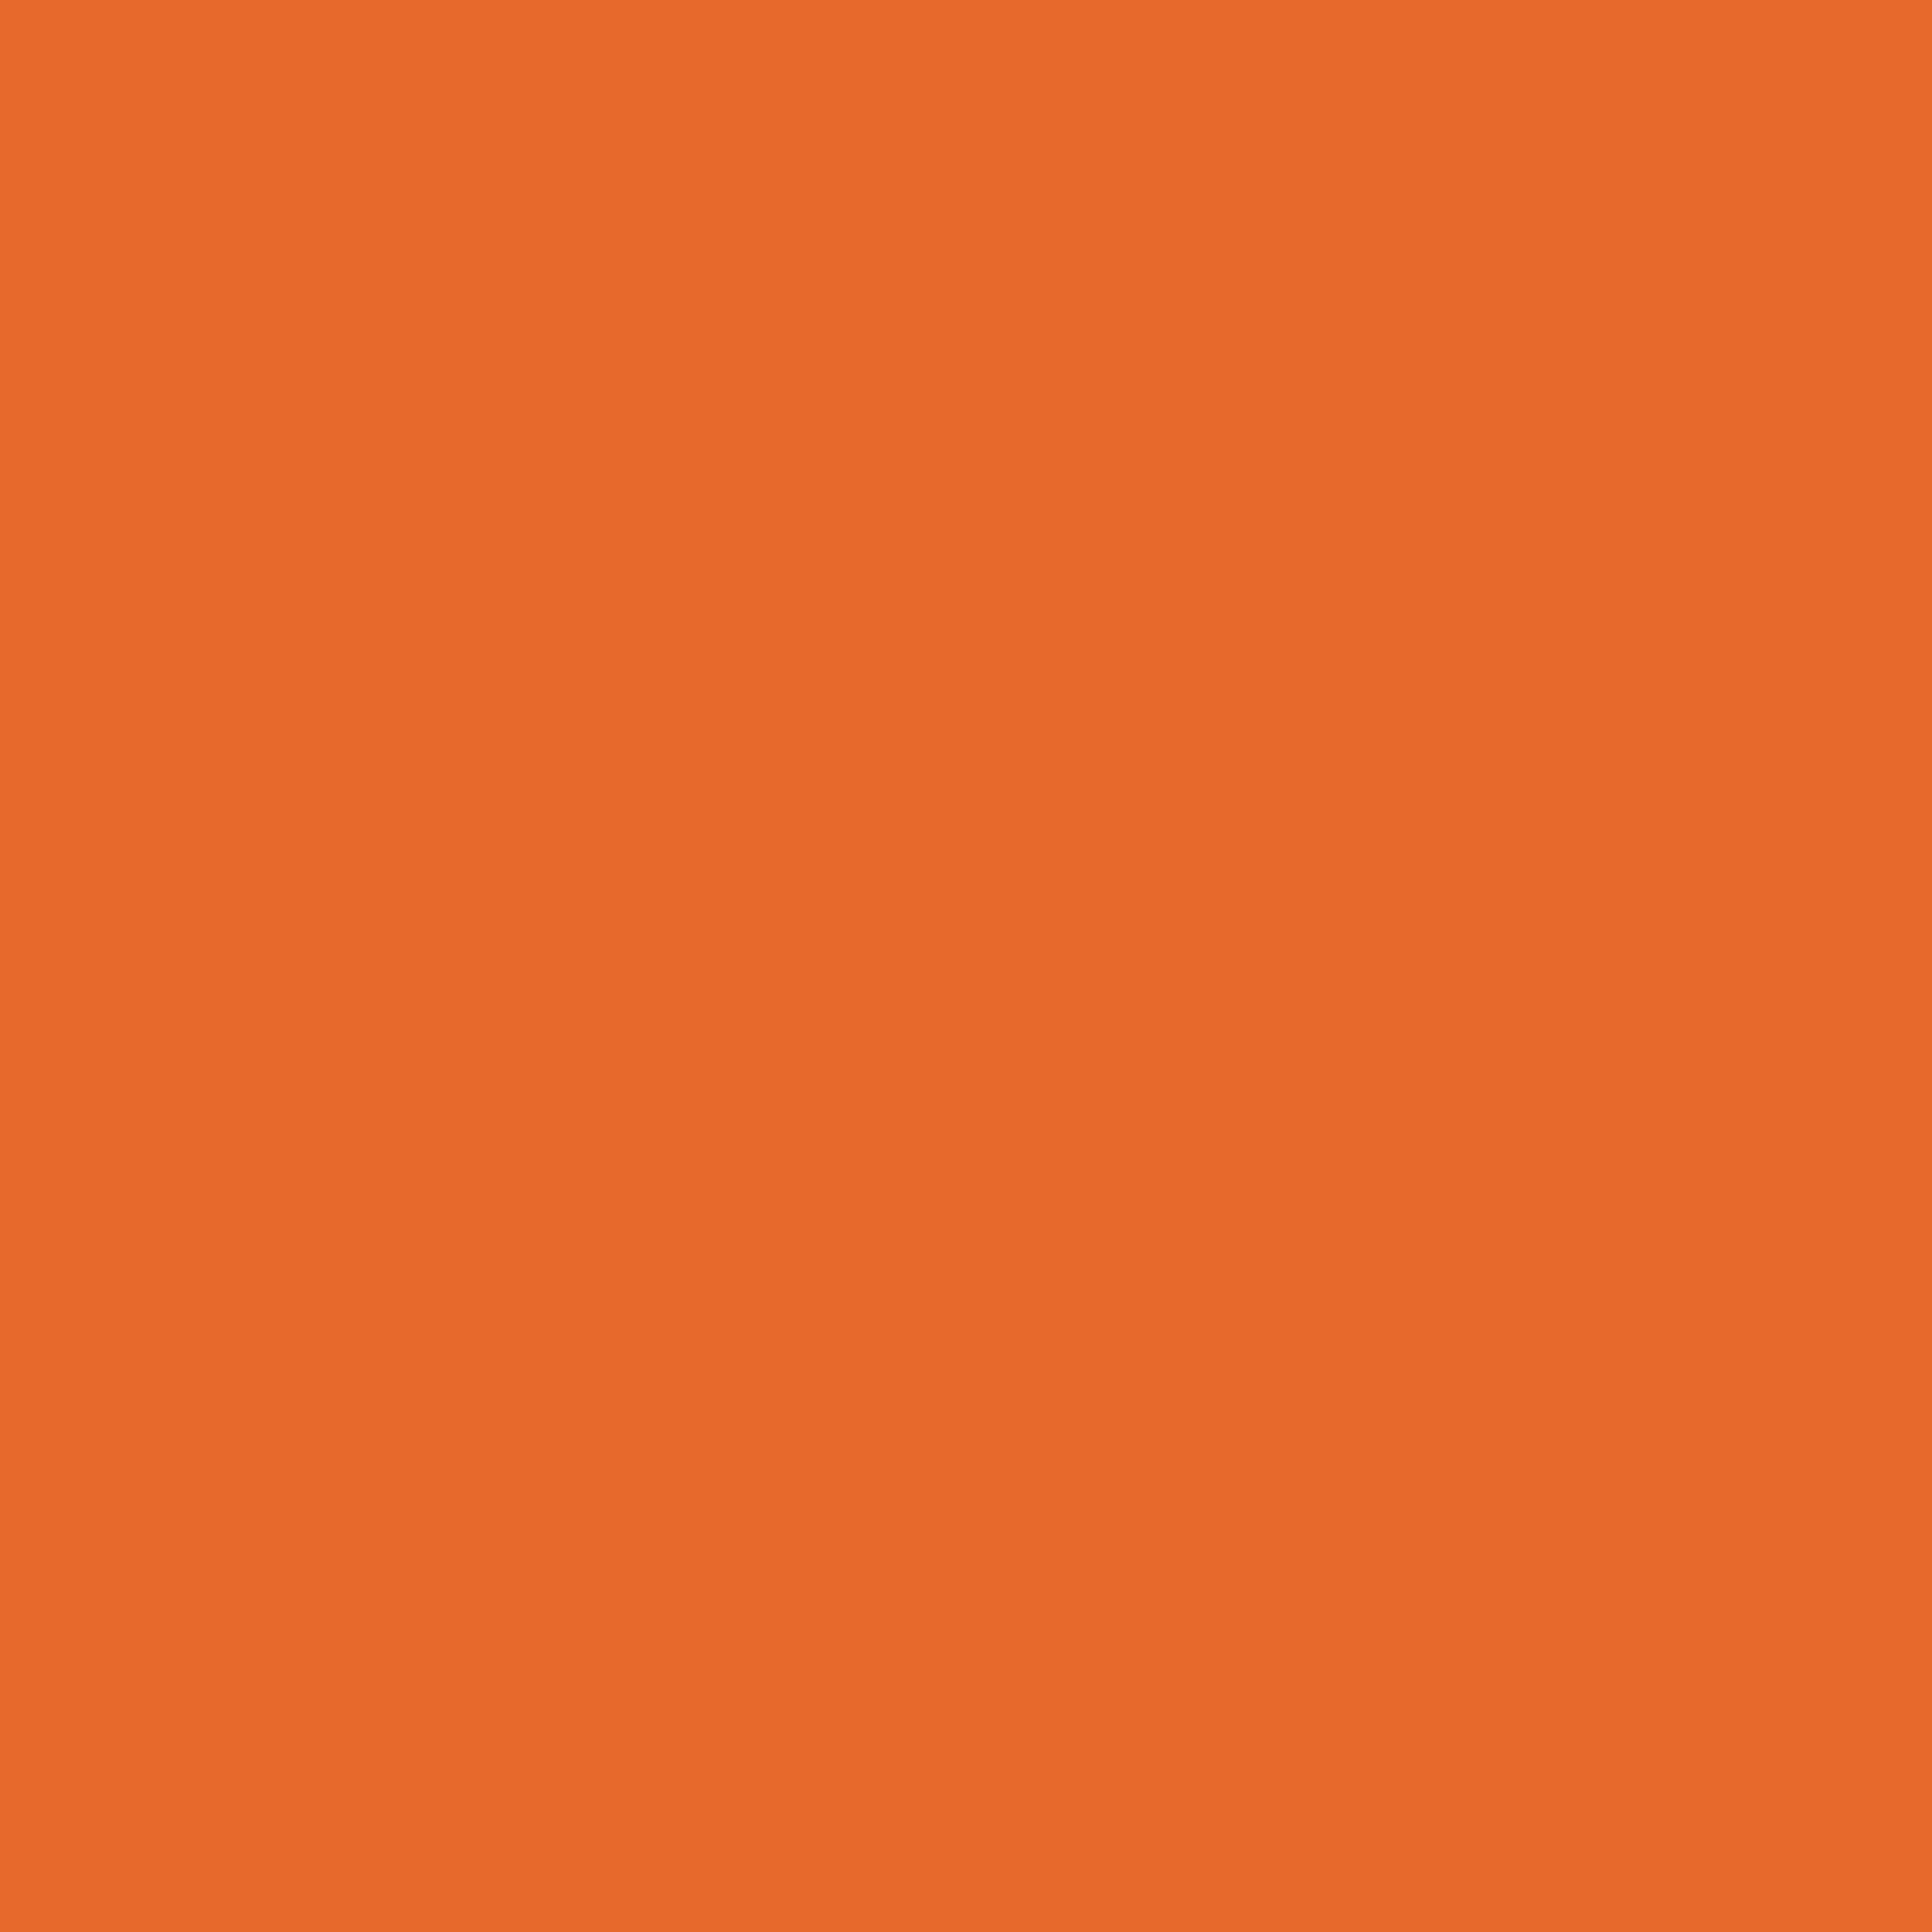 2732x2732 Deep Carrot Orange Solid Color Background